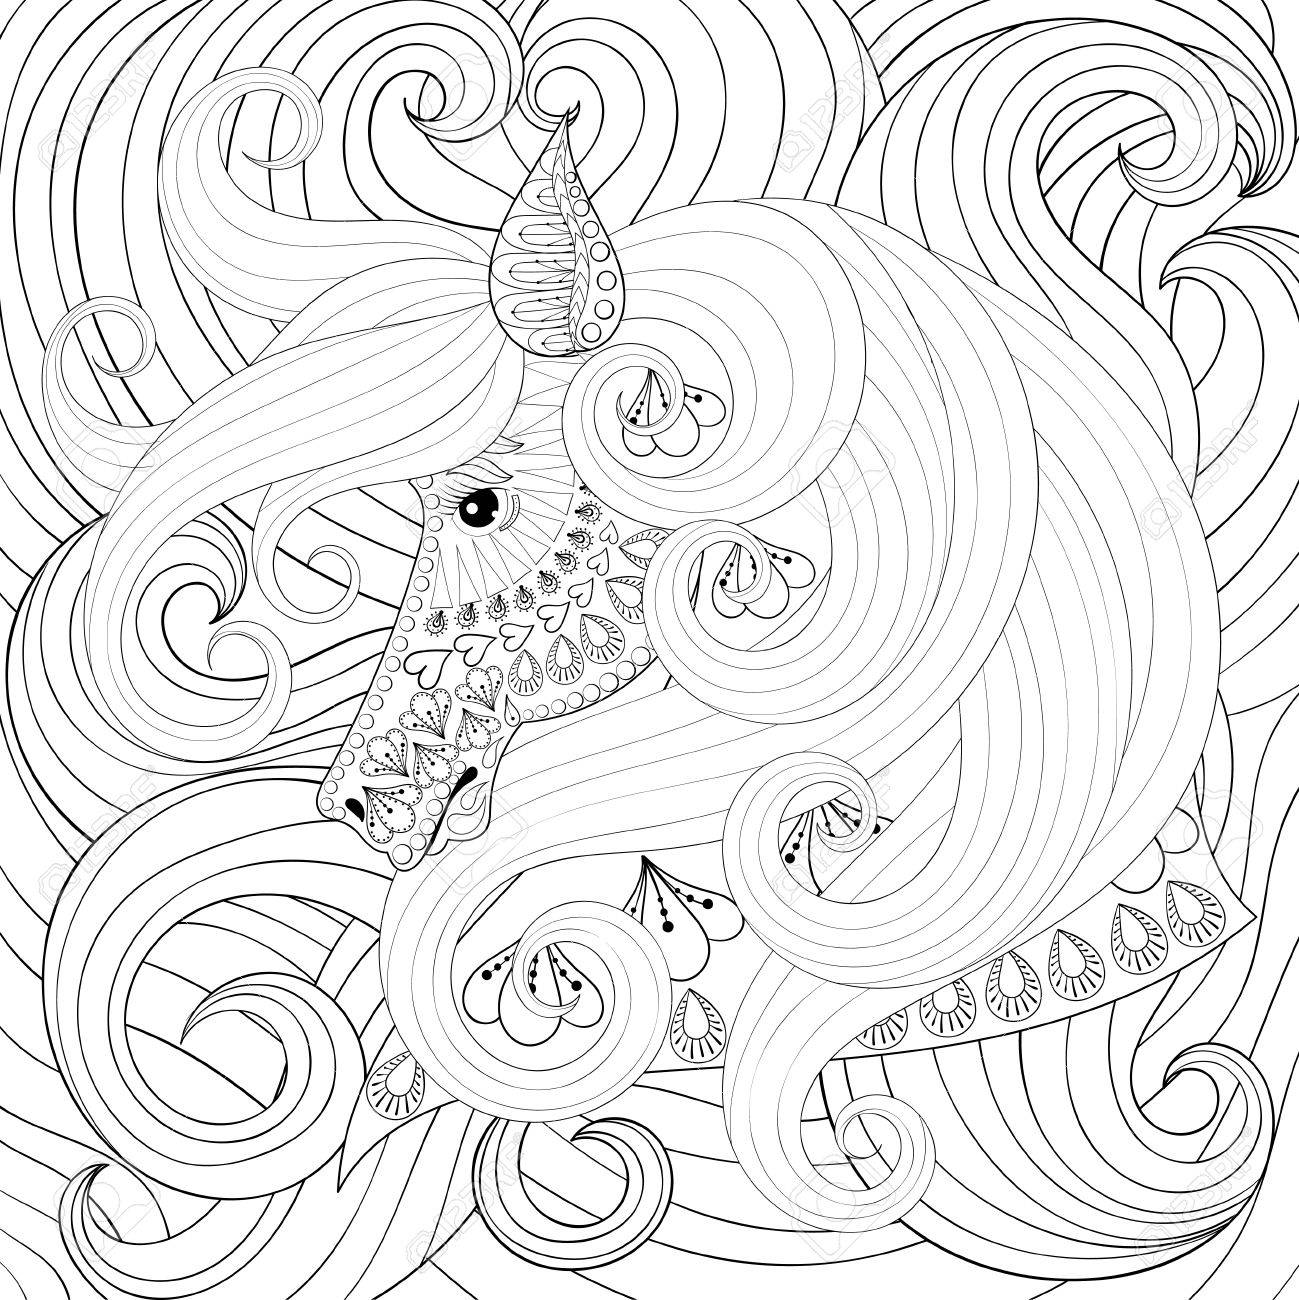 Adult Coloring Book With Horse Head With Long Hairs, Zentangle ...